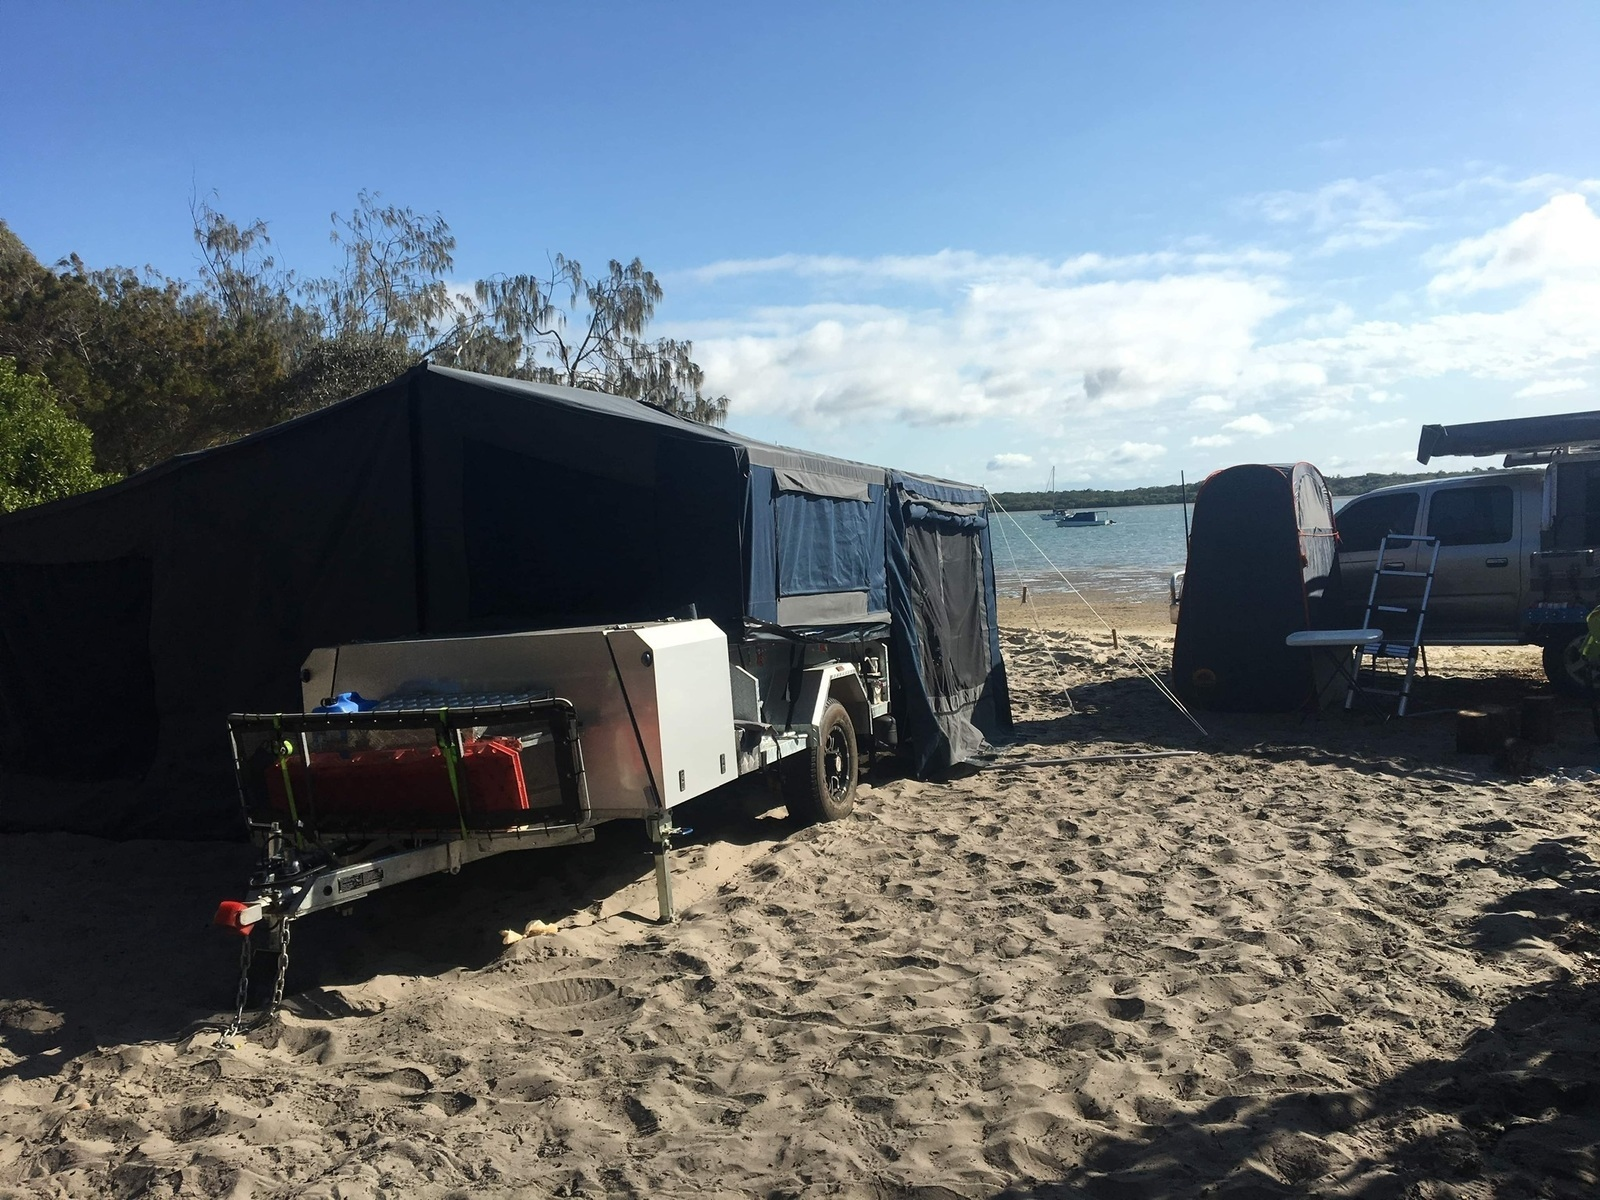 Soft Floor Camper Trailer For Hire In Warner Qld From 85